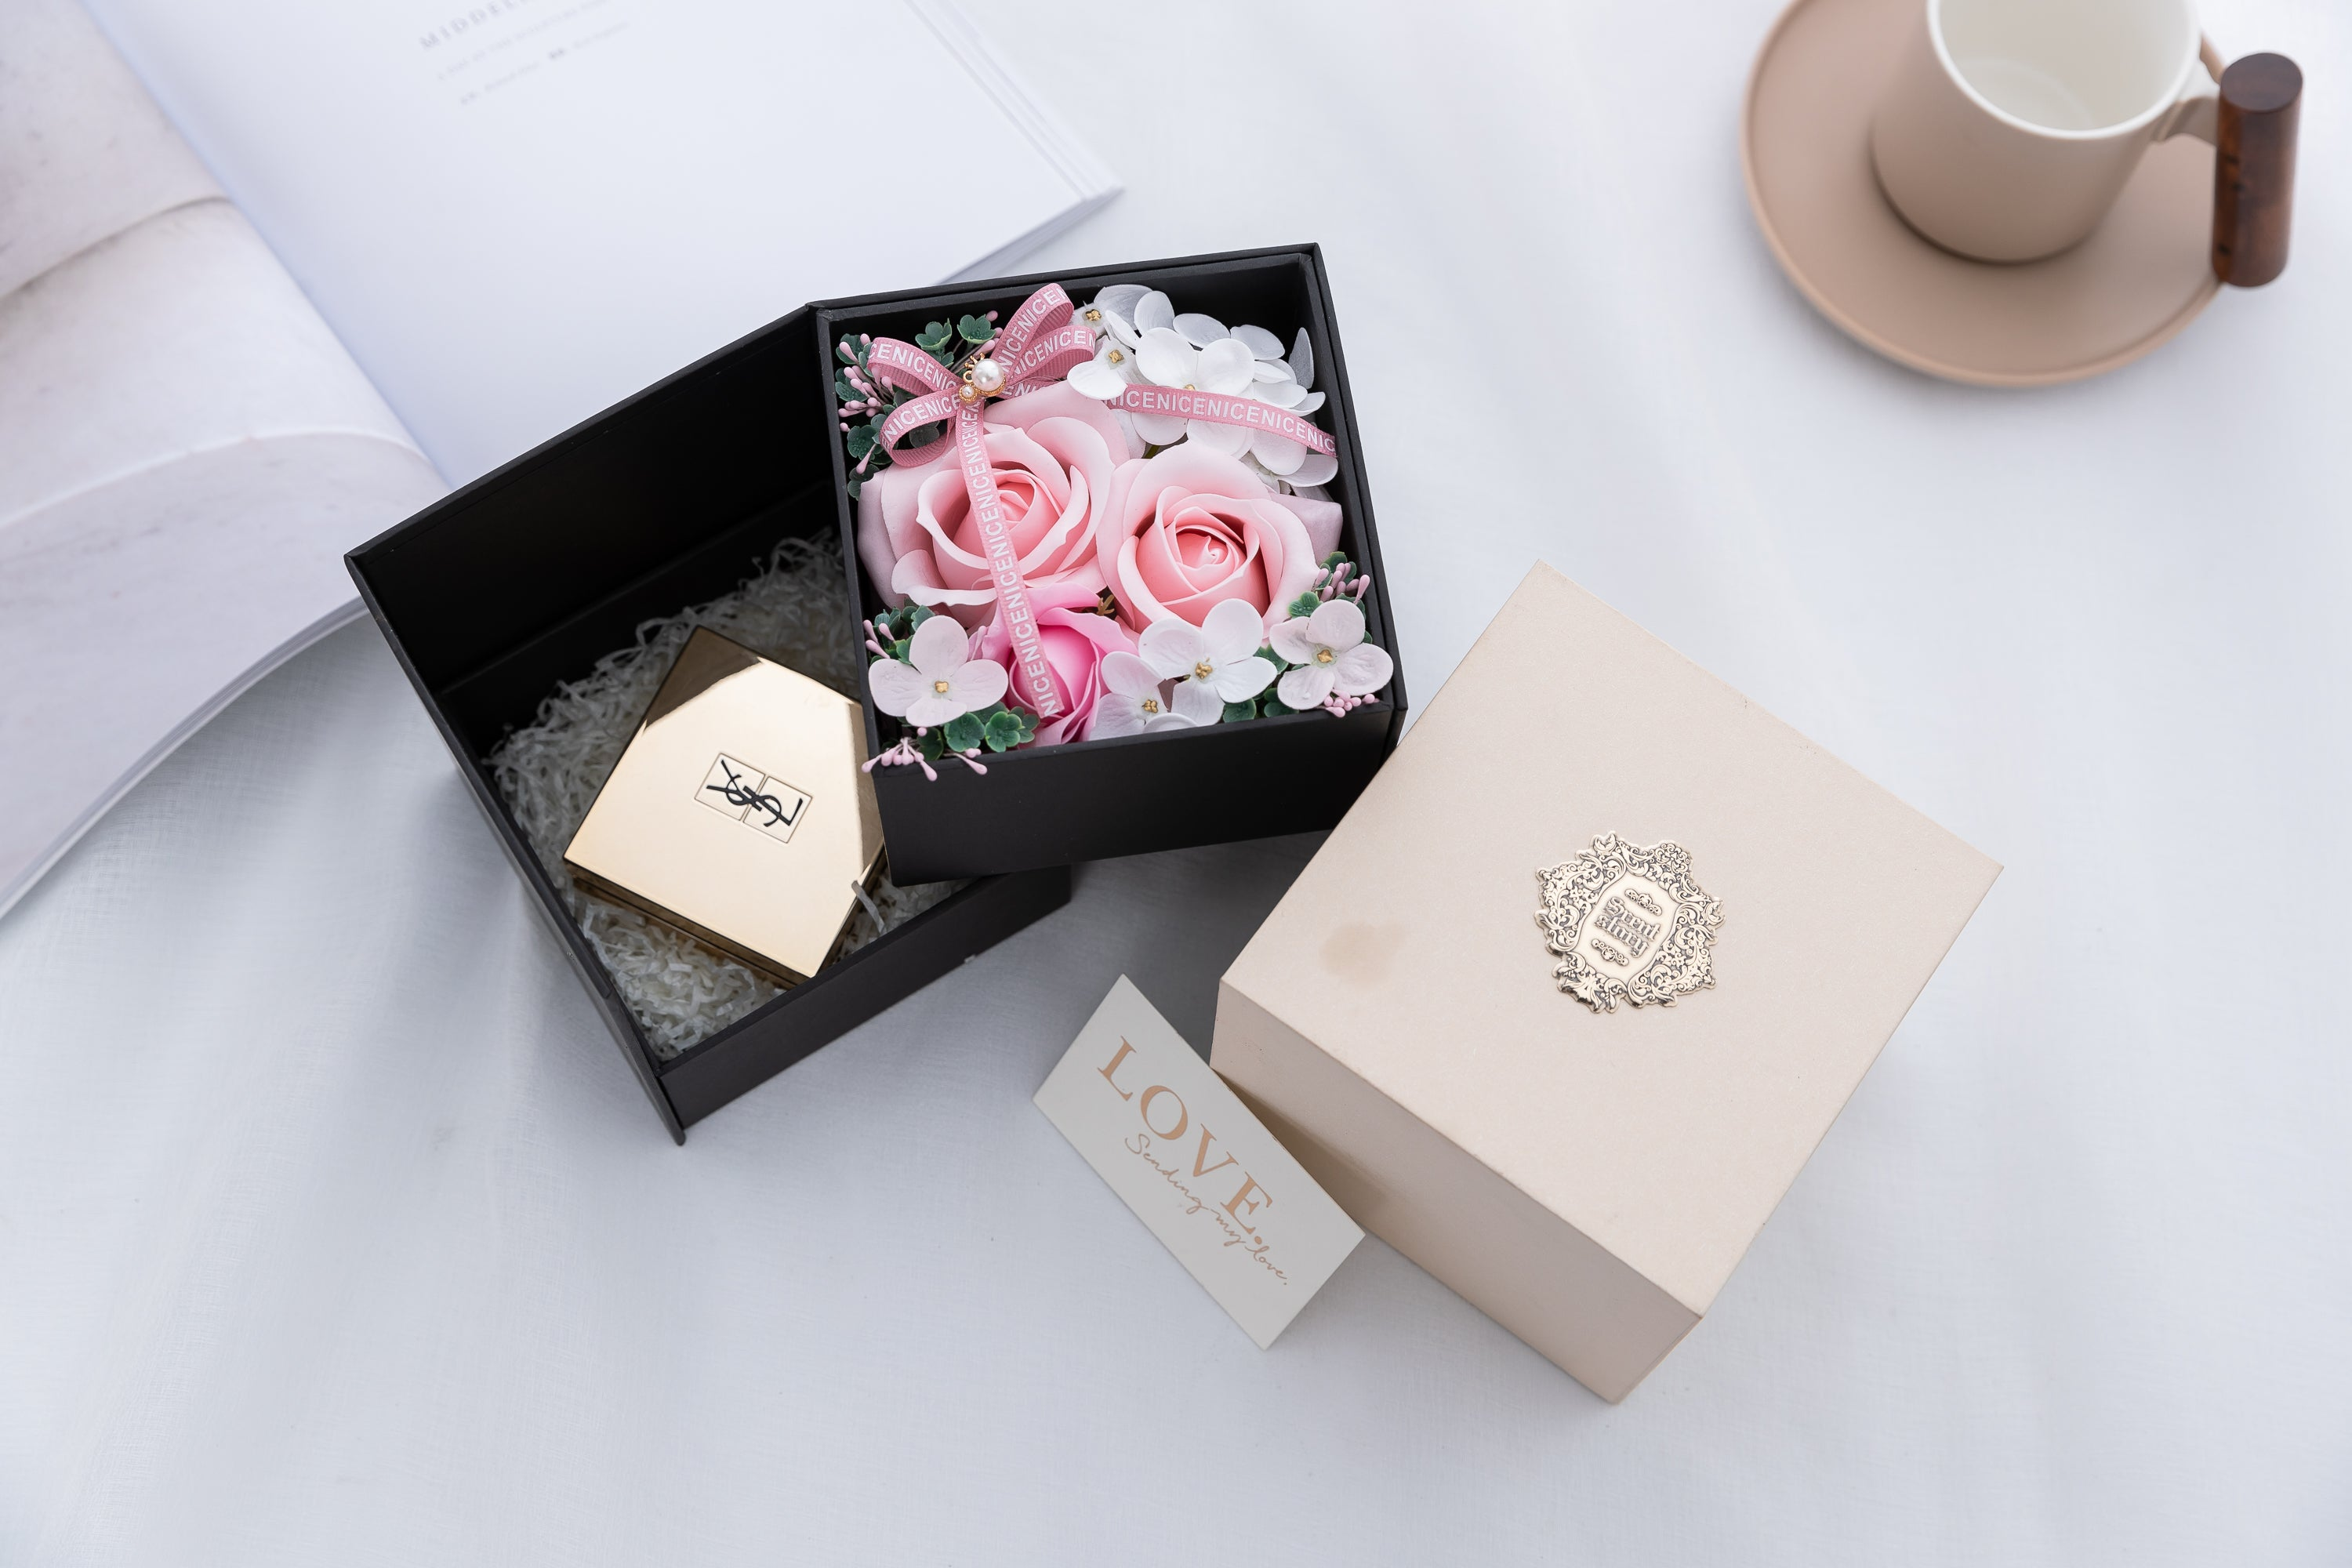 Best Gifts for Her,Preserved Flower Rose,Never Withered Roses,Upscale Immortal Flowers - BEAUVAN